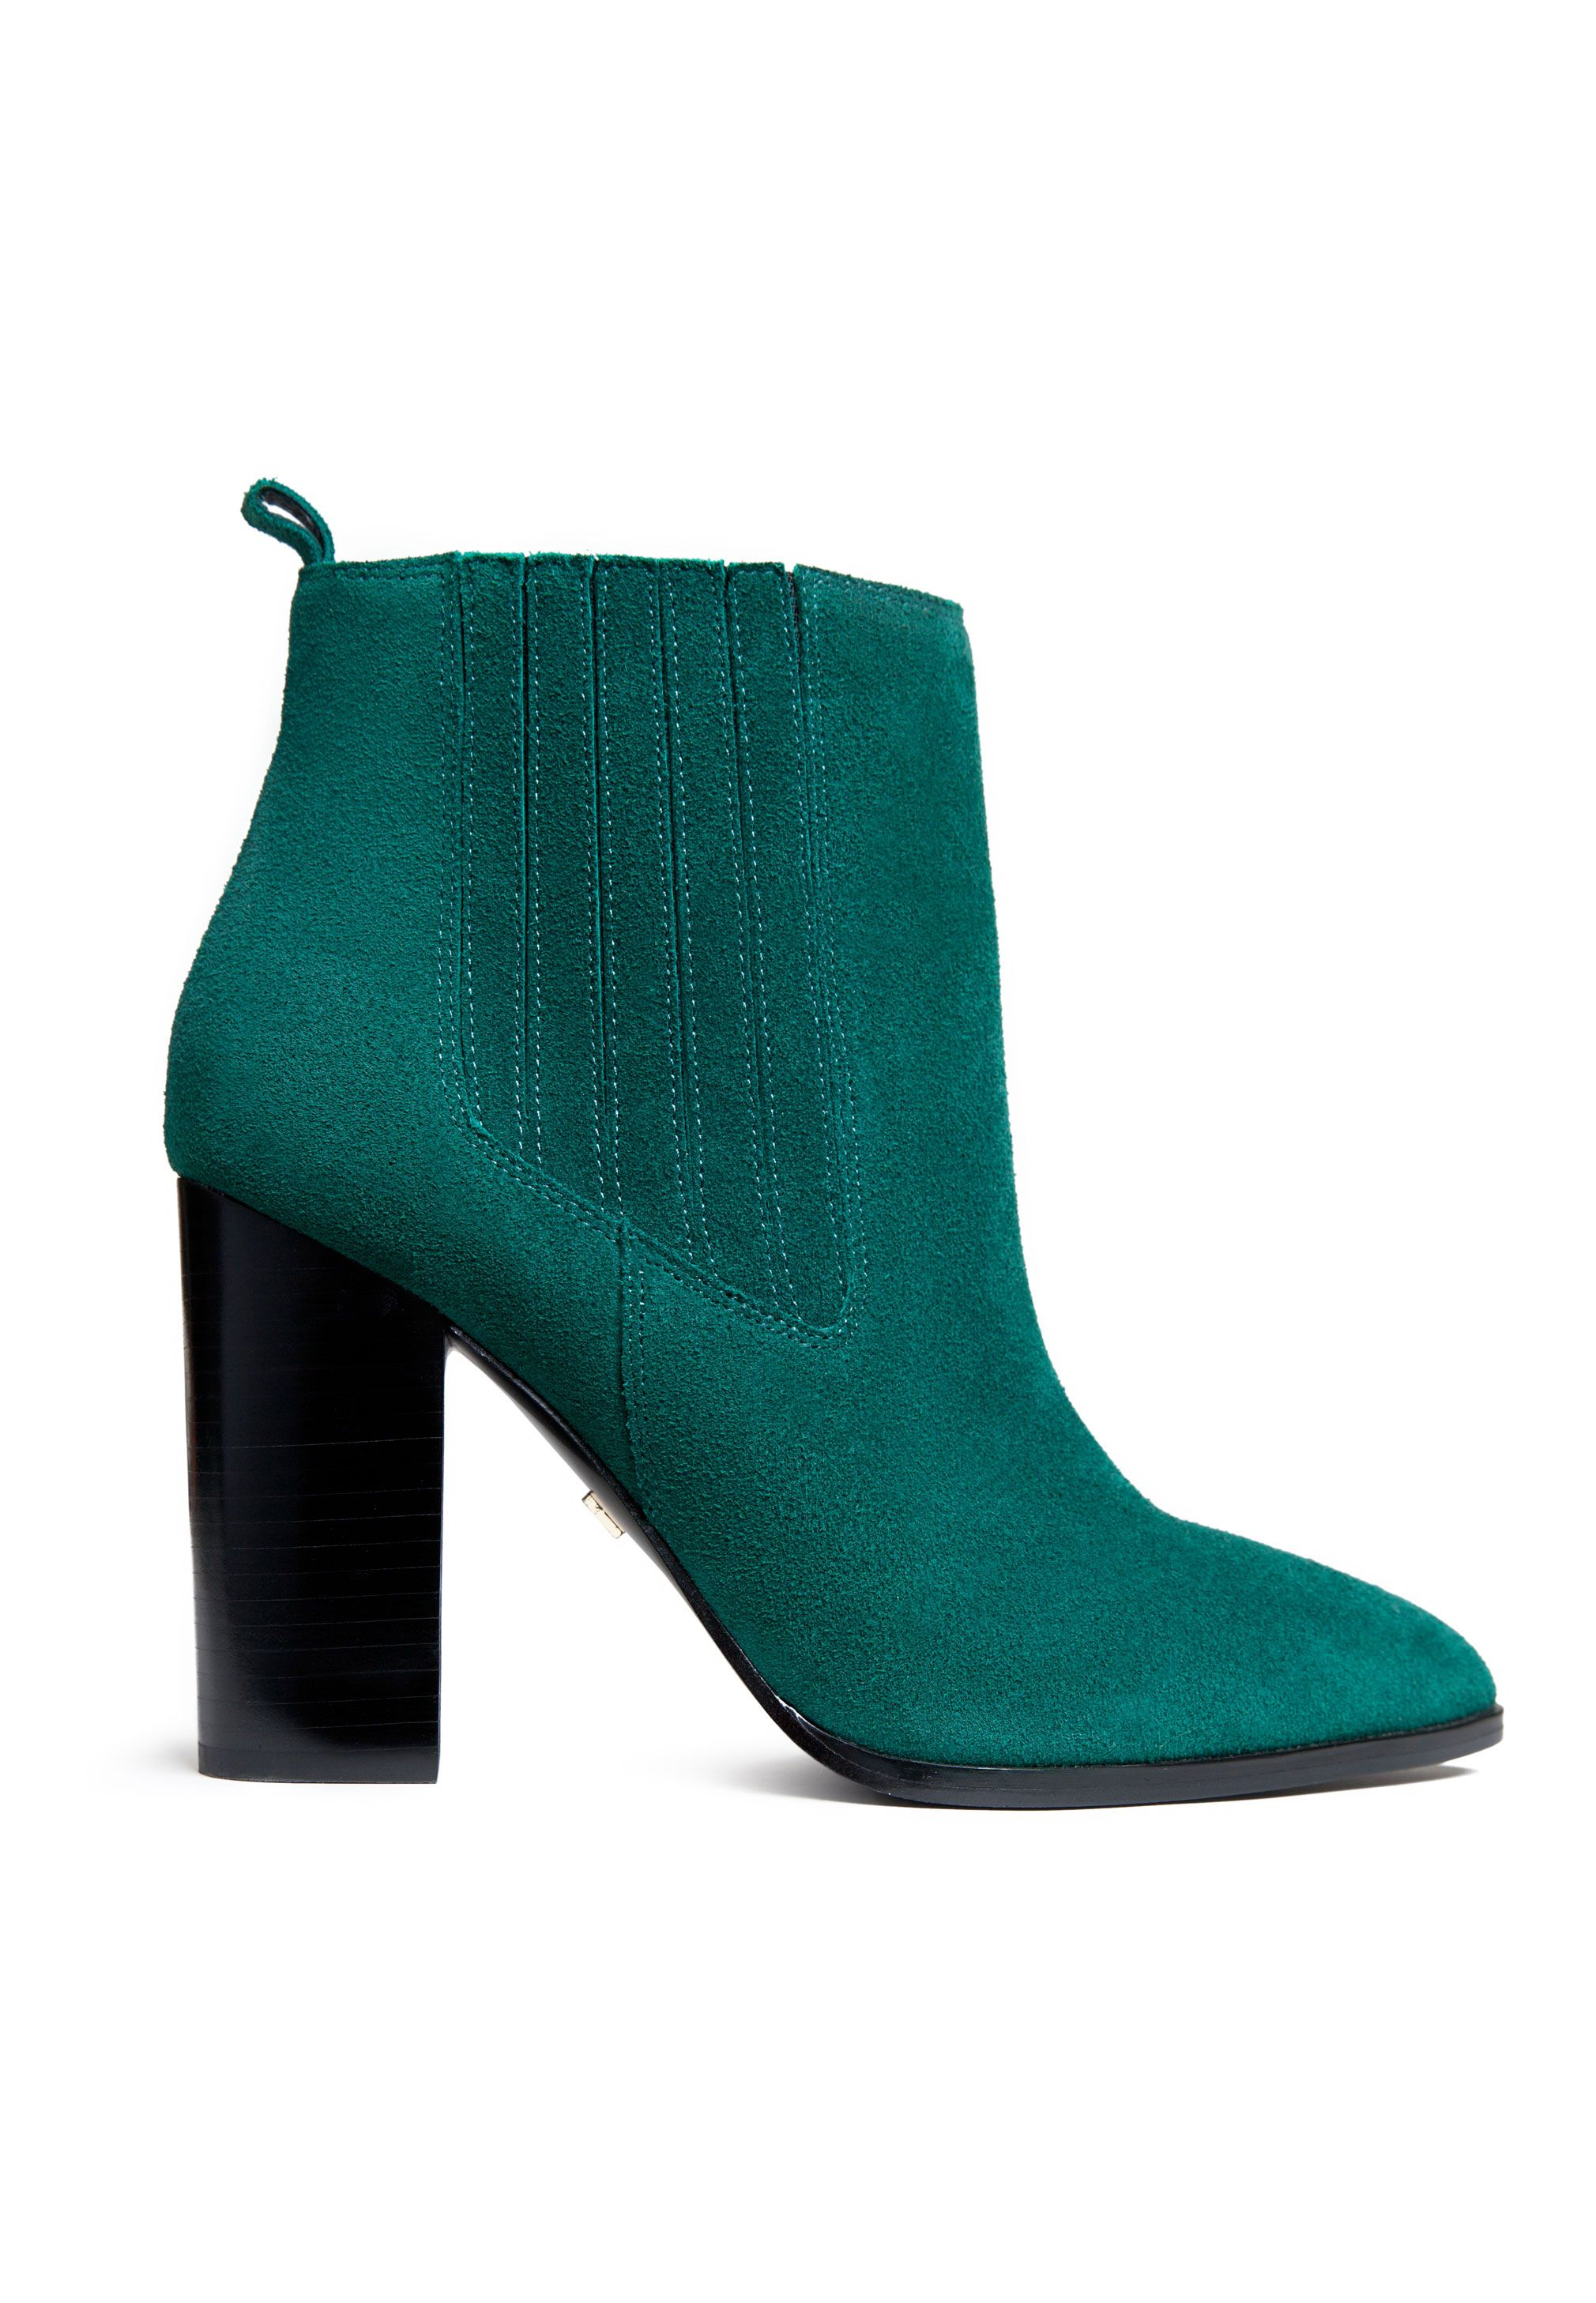 ARIANA SHOES TEAL GREEN, view-small | IvyRevel